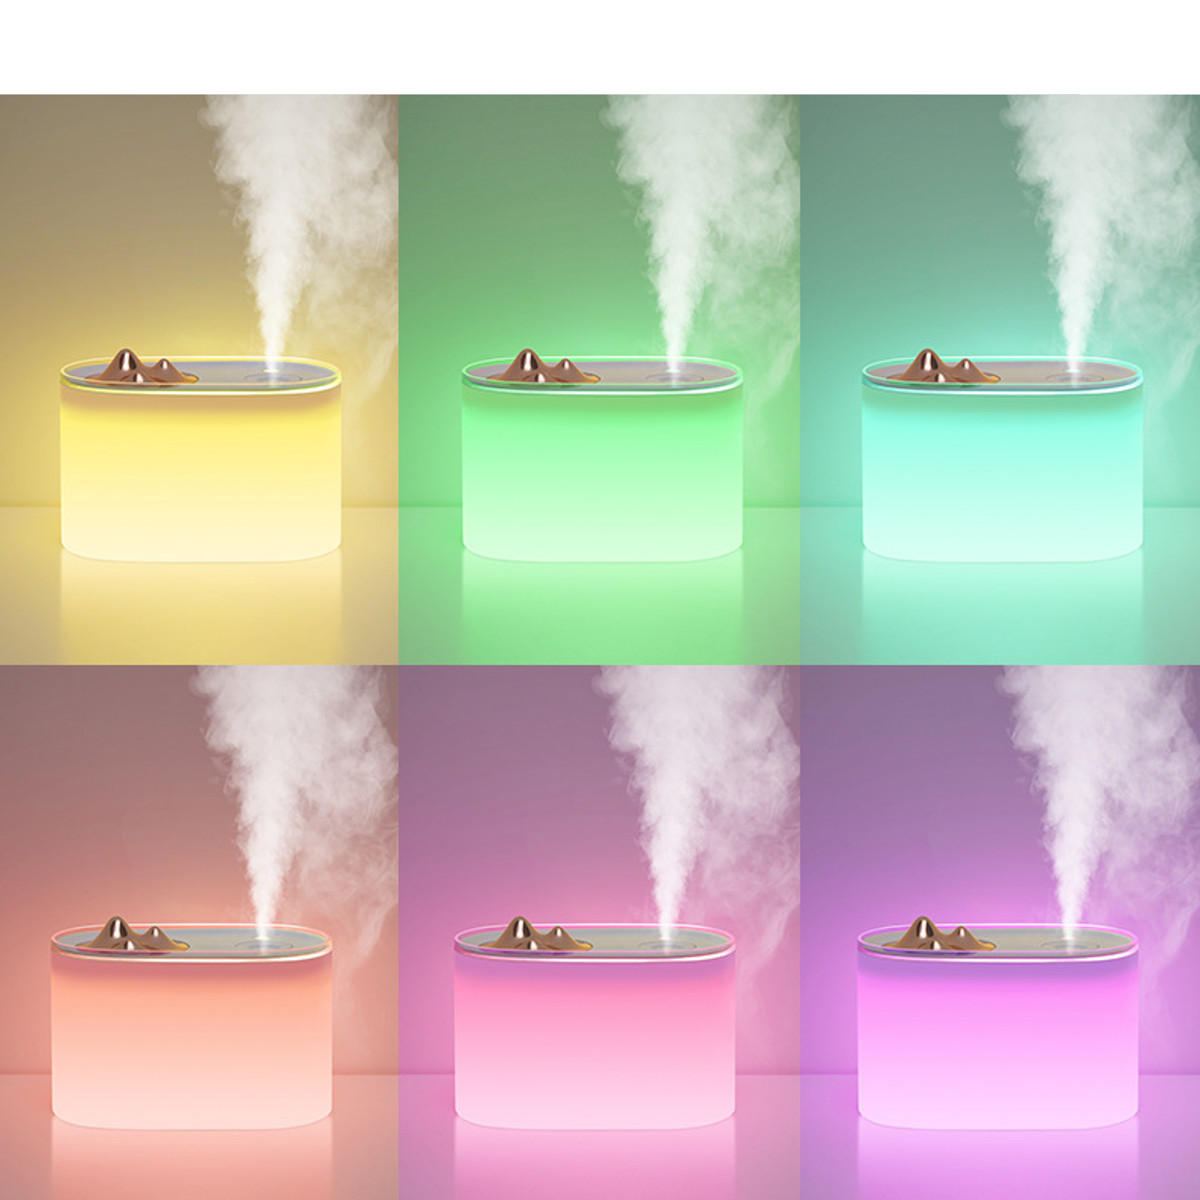 1000ml 7 Colors LED Light USB Ultrasonic Humidifier Double Spraying Aroma Essential Oil Diffuser - 6